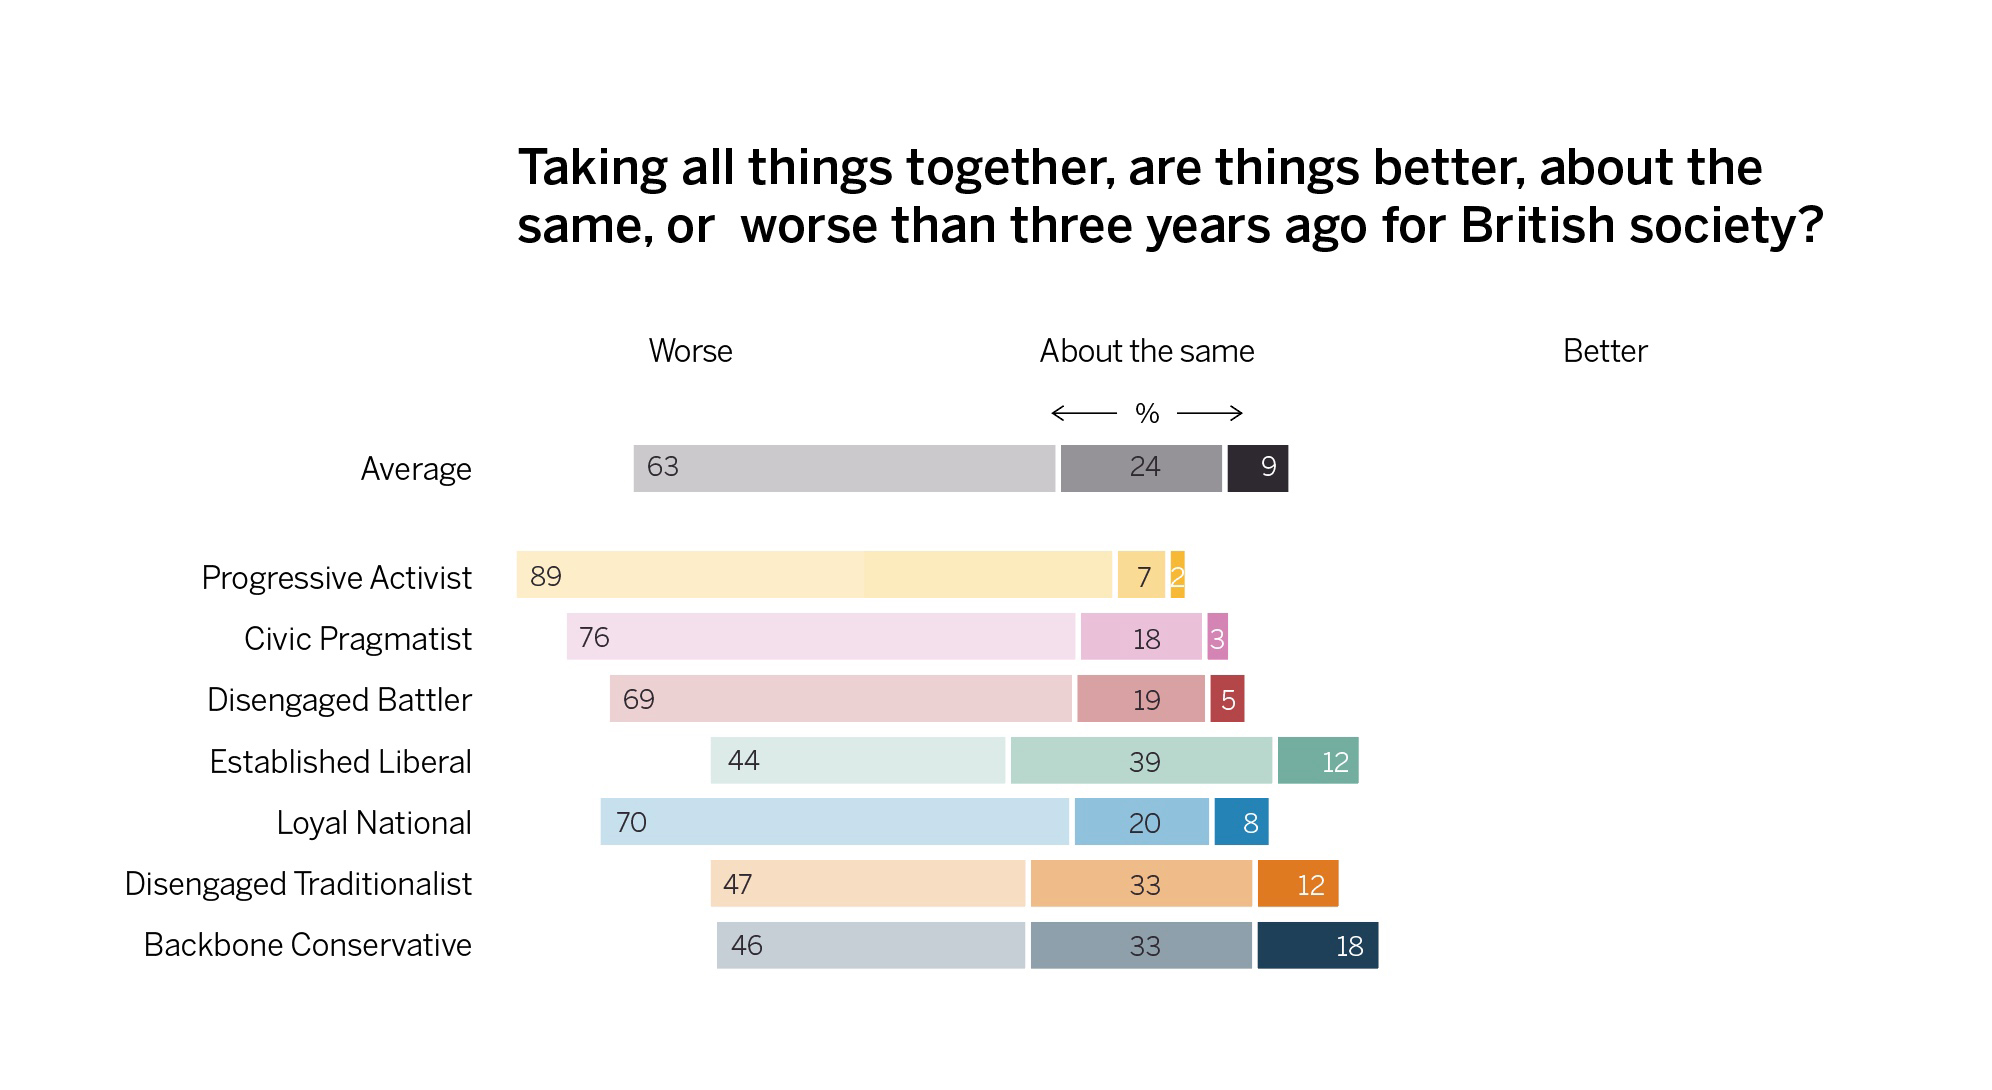 Views on whether British society is better or worse than three years ago, across segments